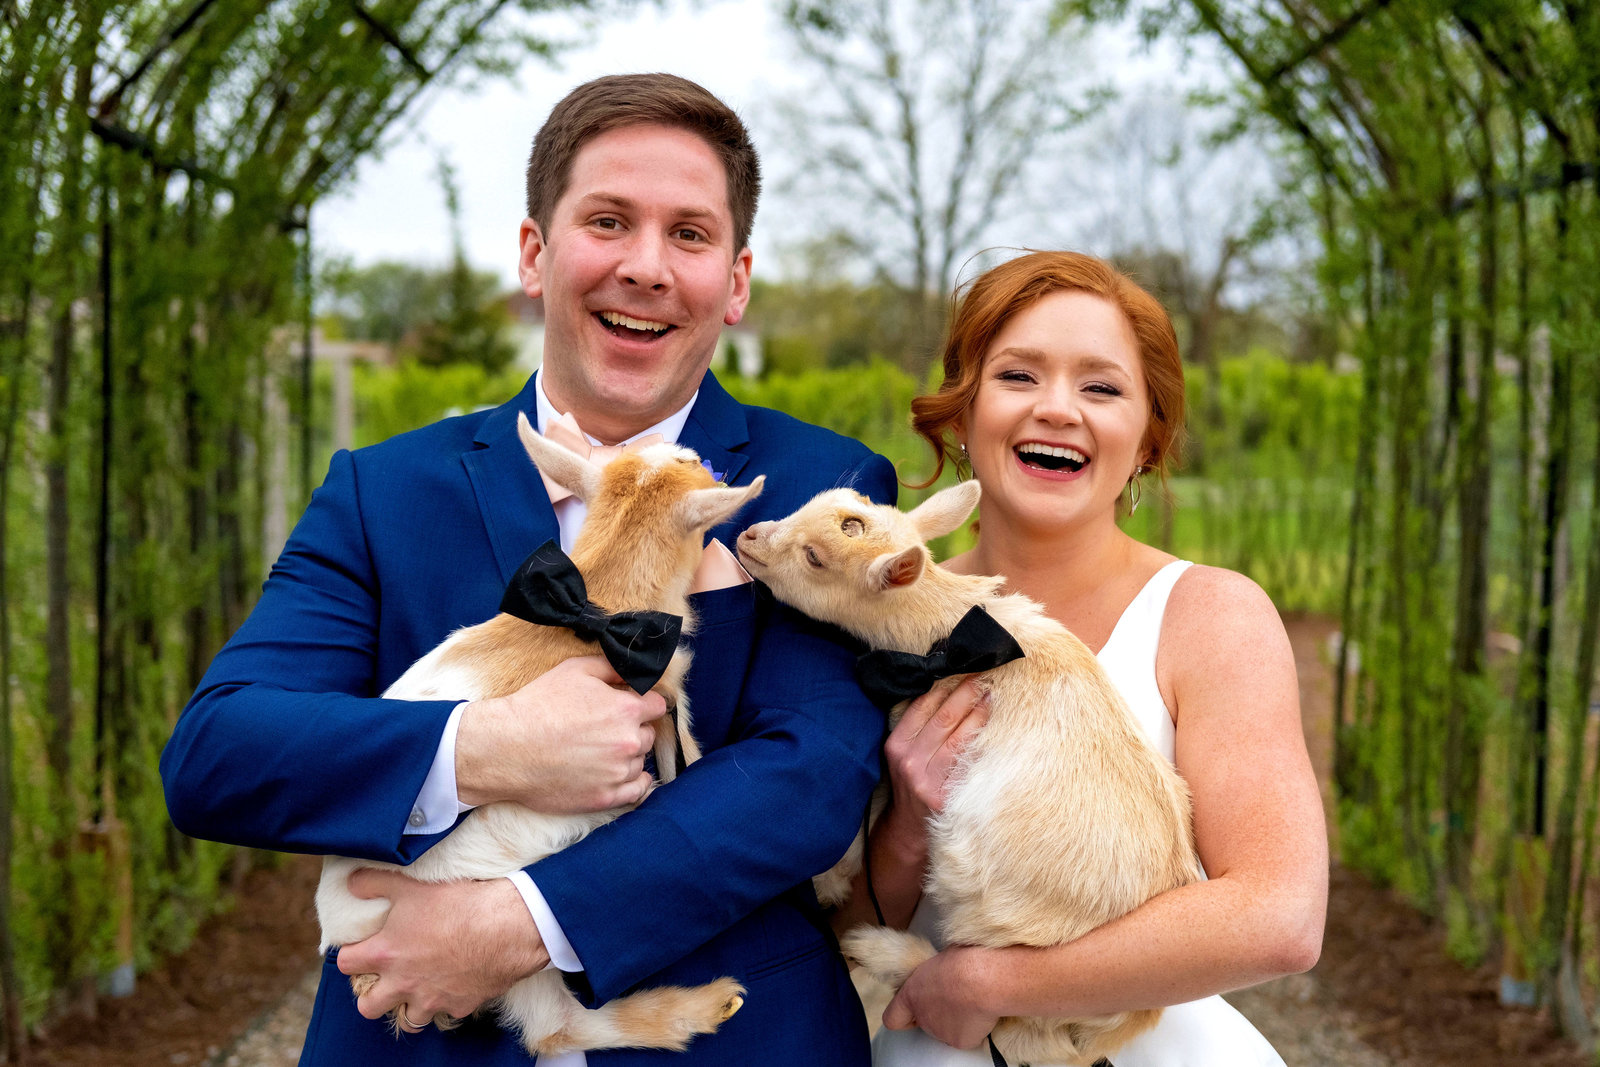 Wedding photo of a bride and groom smiling and holding baby goats at Cornman Farms